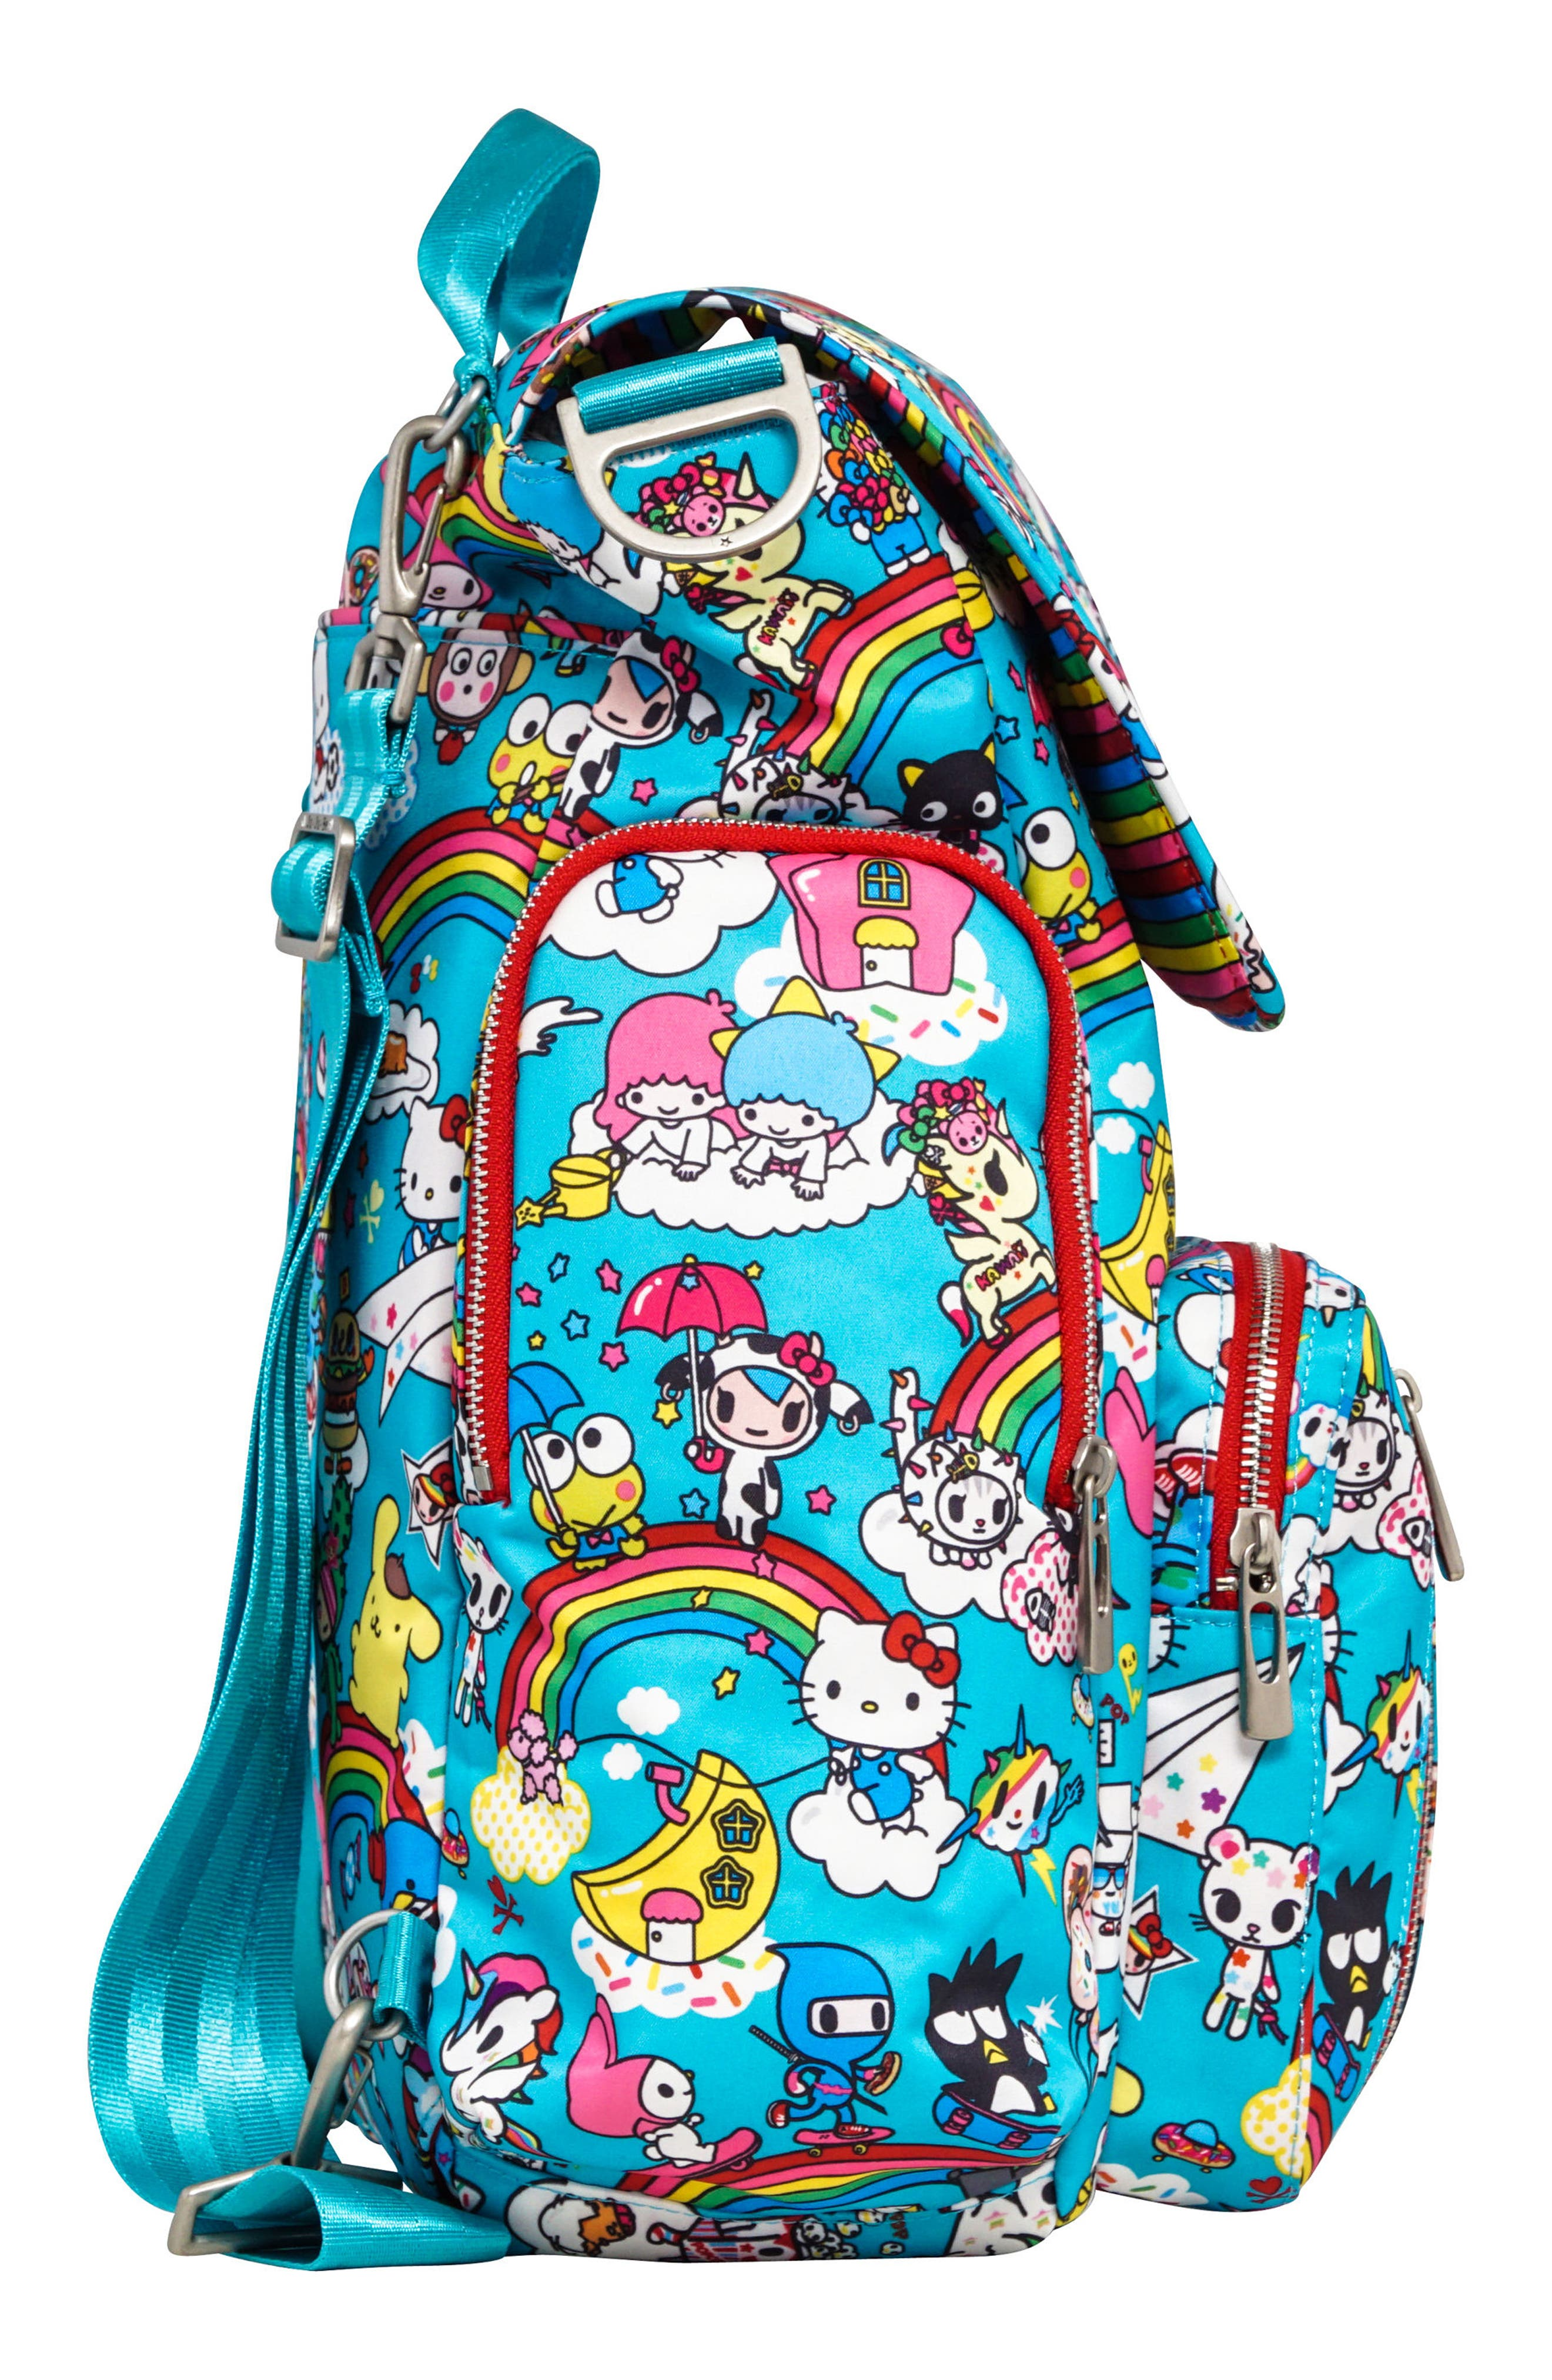 x tokidoki for Hello Sanrio Rainbow Dreams Sporty Diaper Backpack,                             Alternate thumbnail 4, color,                             433